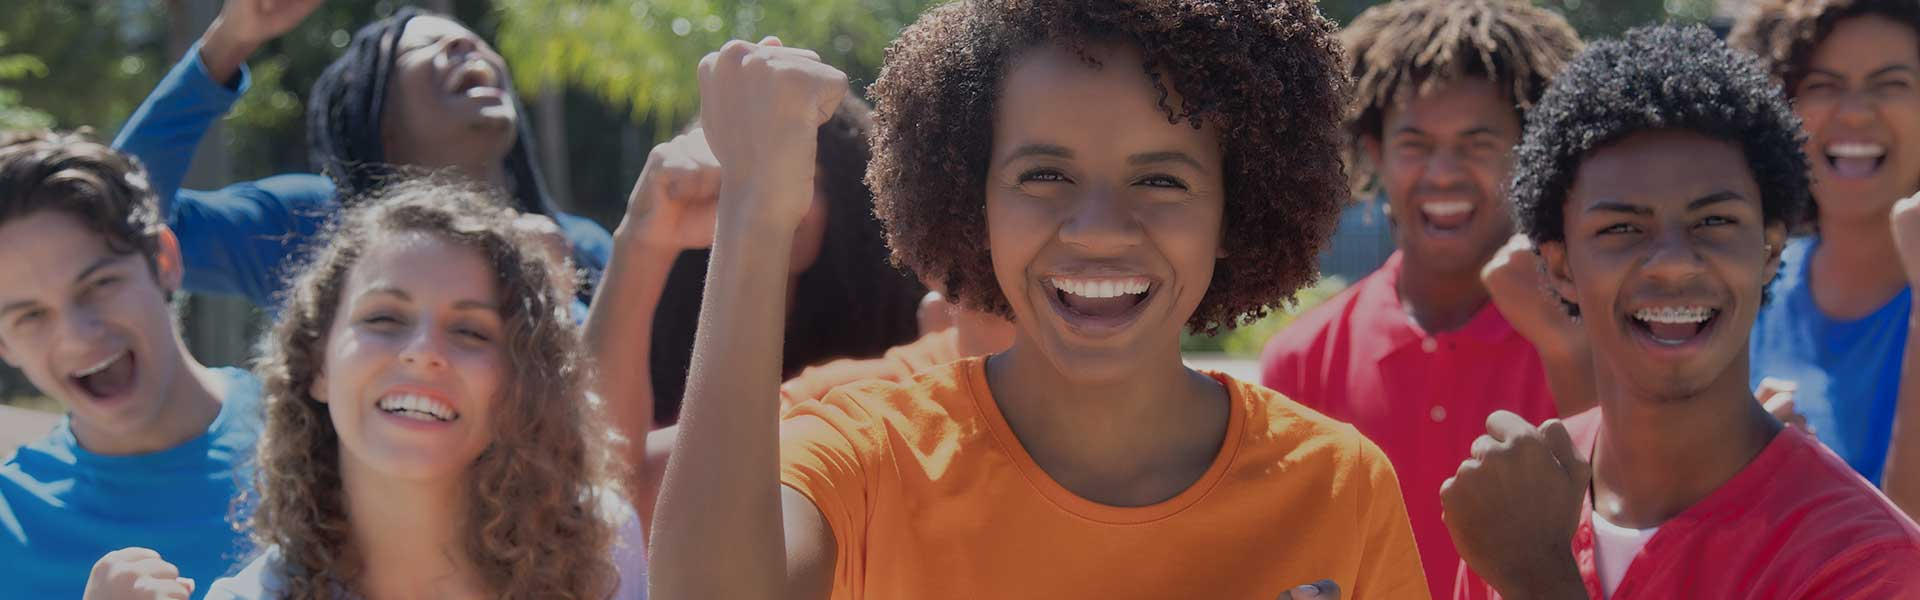 smiling students with fist pumping